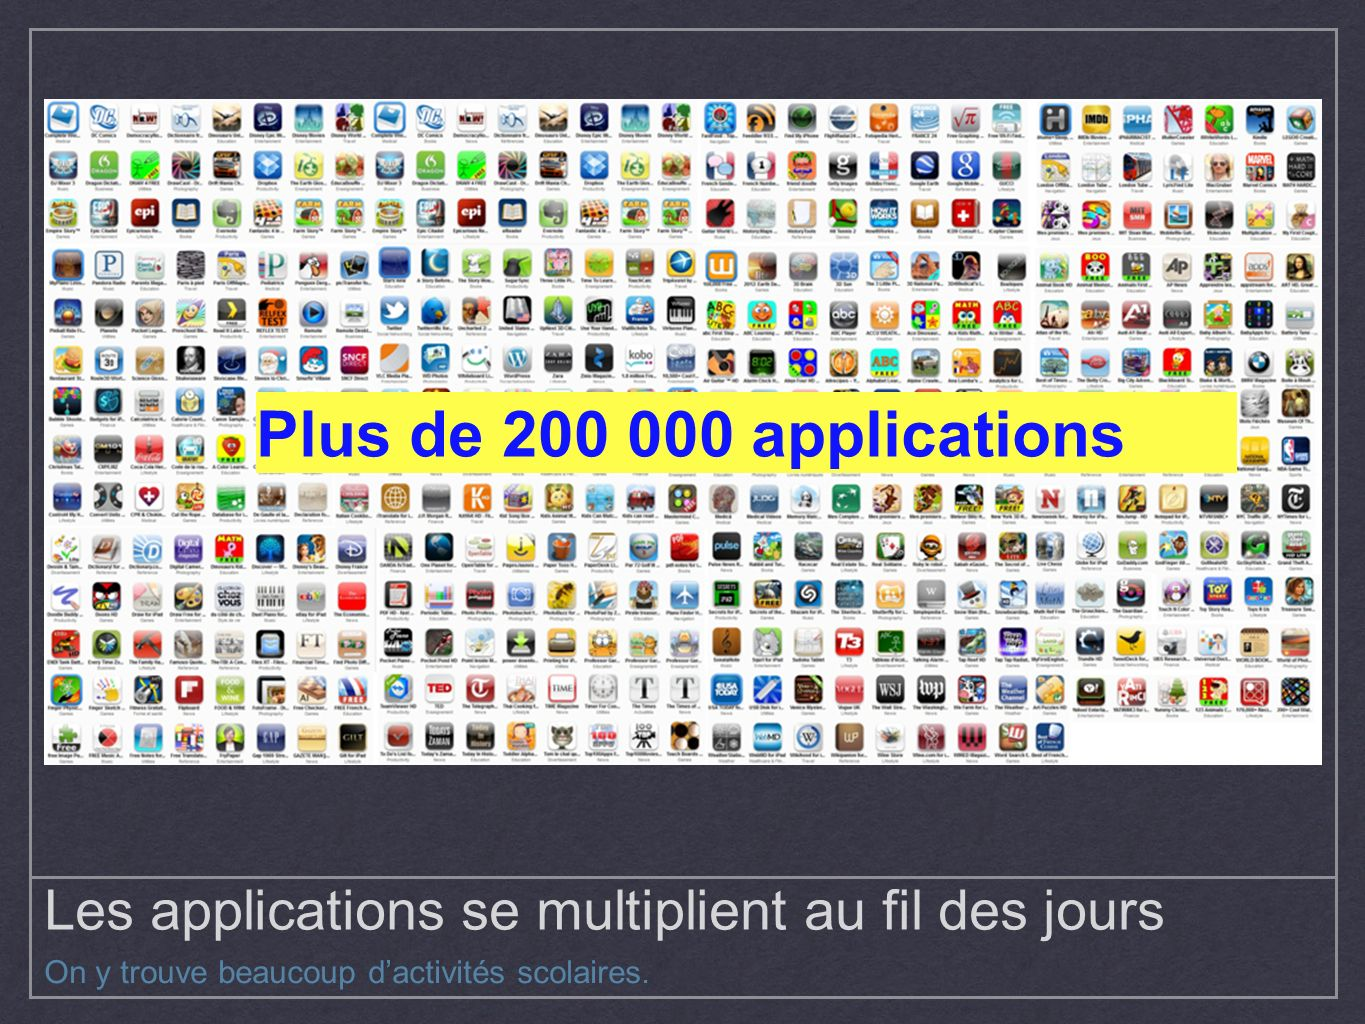 Les applications se multiplient au fil des jours